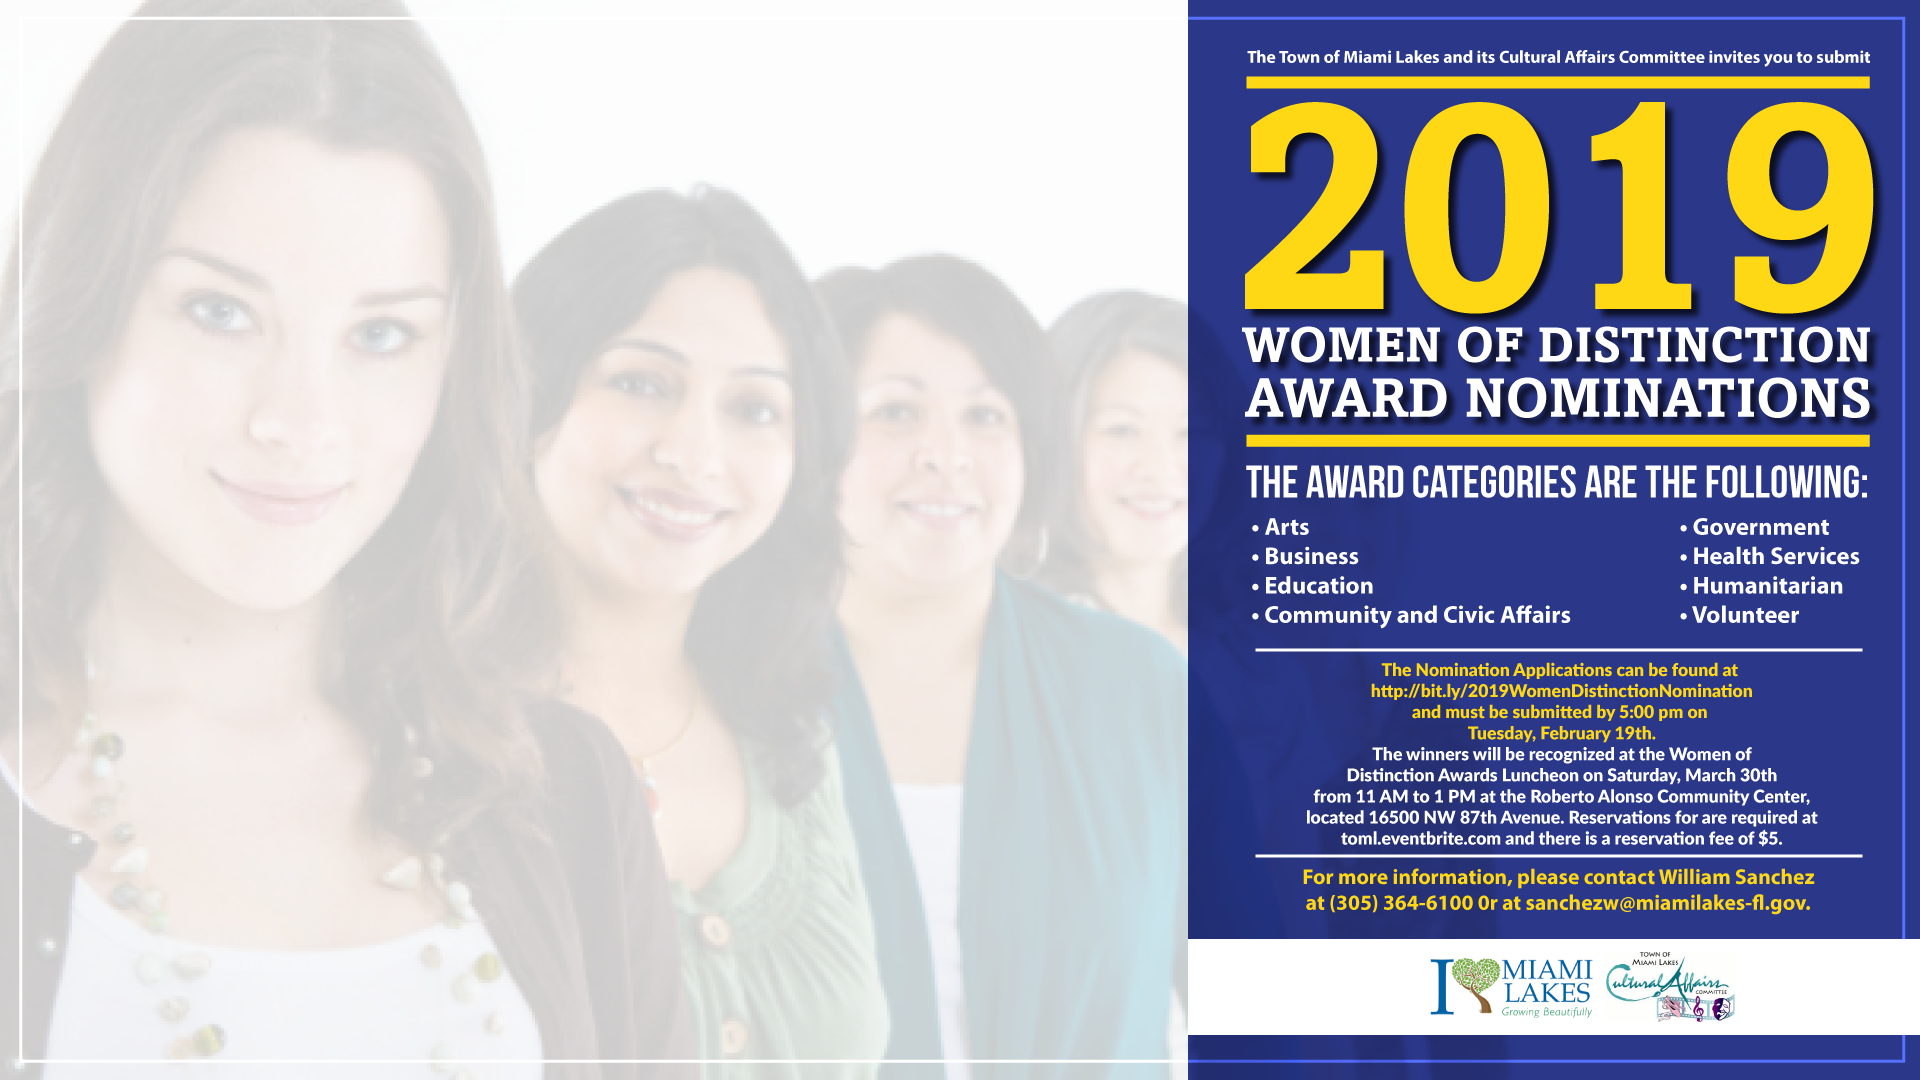 2019 Women of Distinction Award Nominations flyer